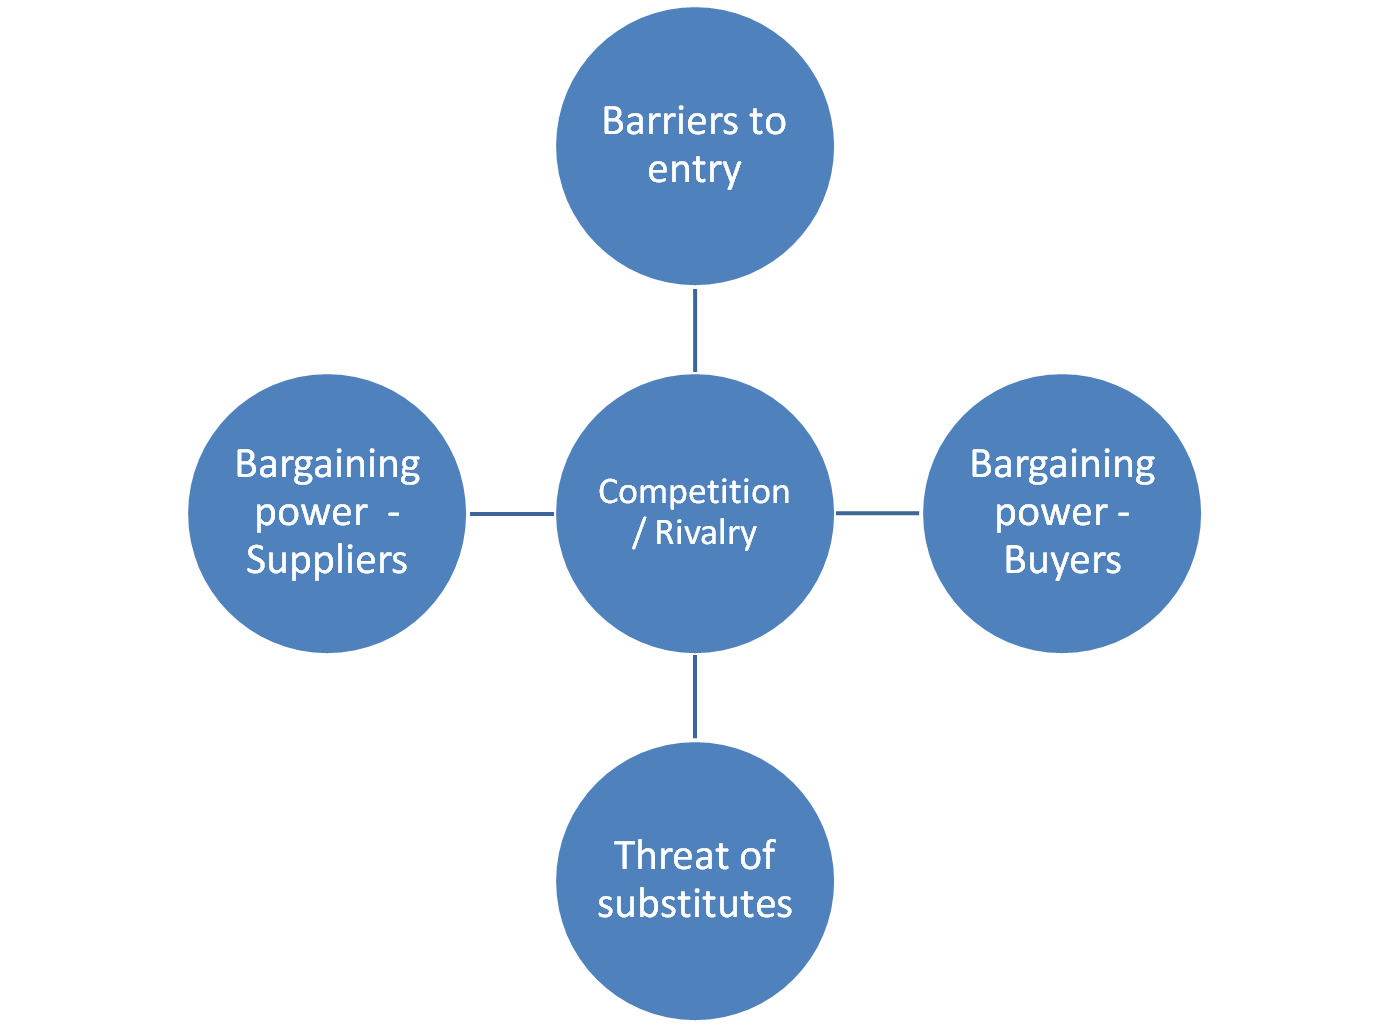 porter 5 forces of tcs Porter's 5 forces are threat of new entrants, bargaining power of suppliers, bargaining power of buyers, threat of substitute products and rivalry among the existing firms about porter's five forces model of competition analysis includes details beneficiaries.